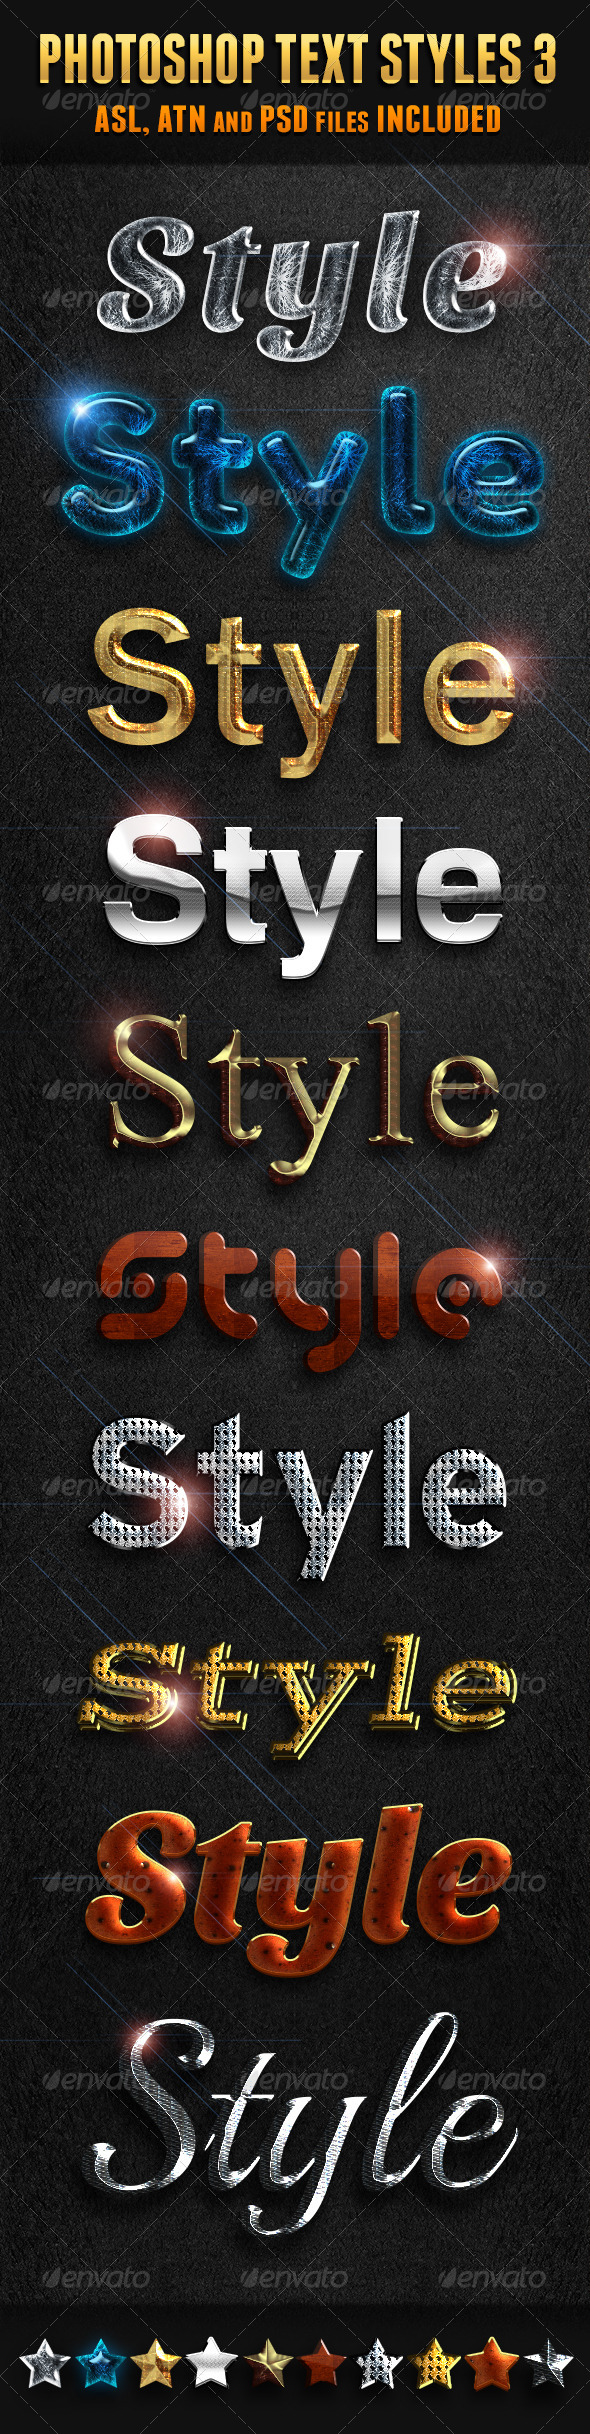 GraphicRiver Photoshop Text Styles 3 5973631